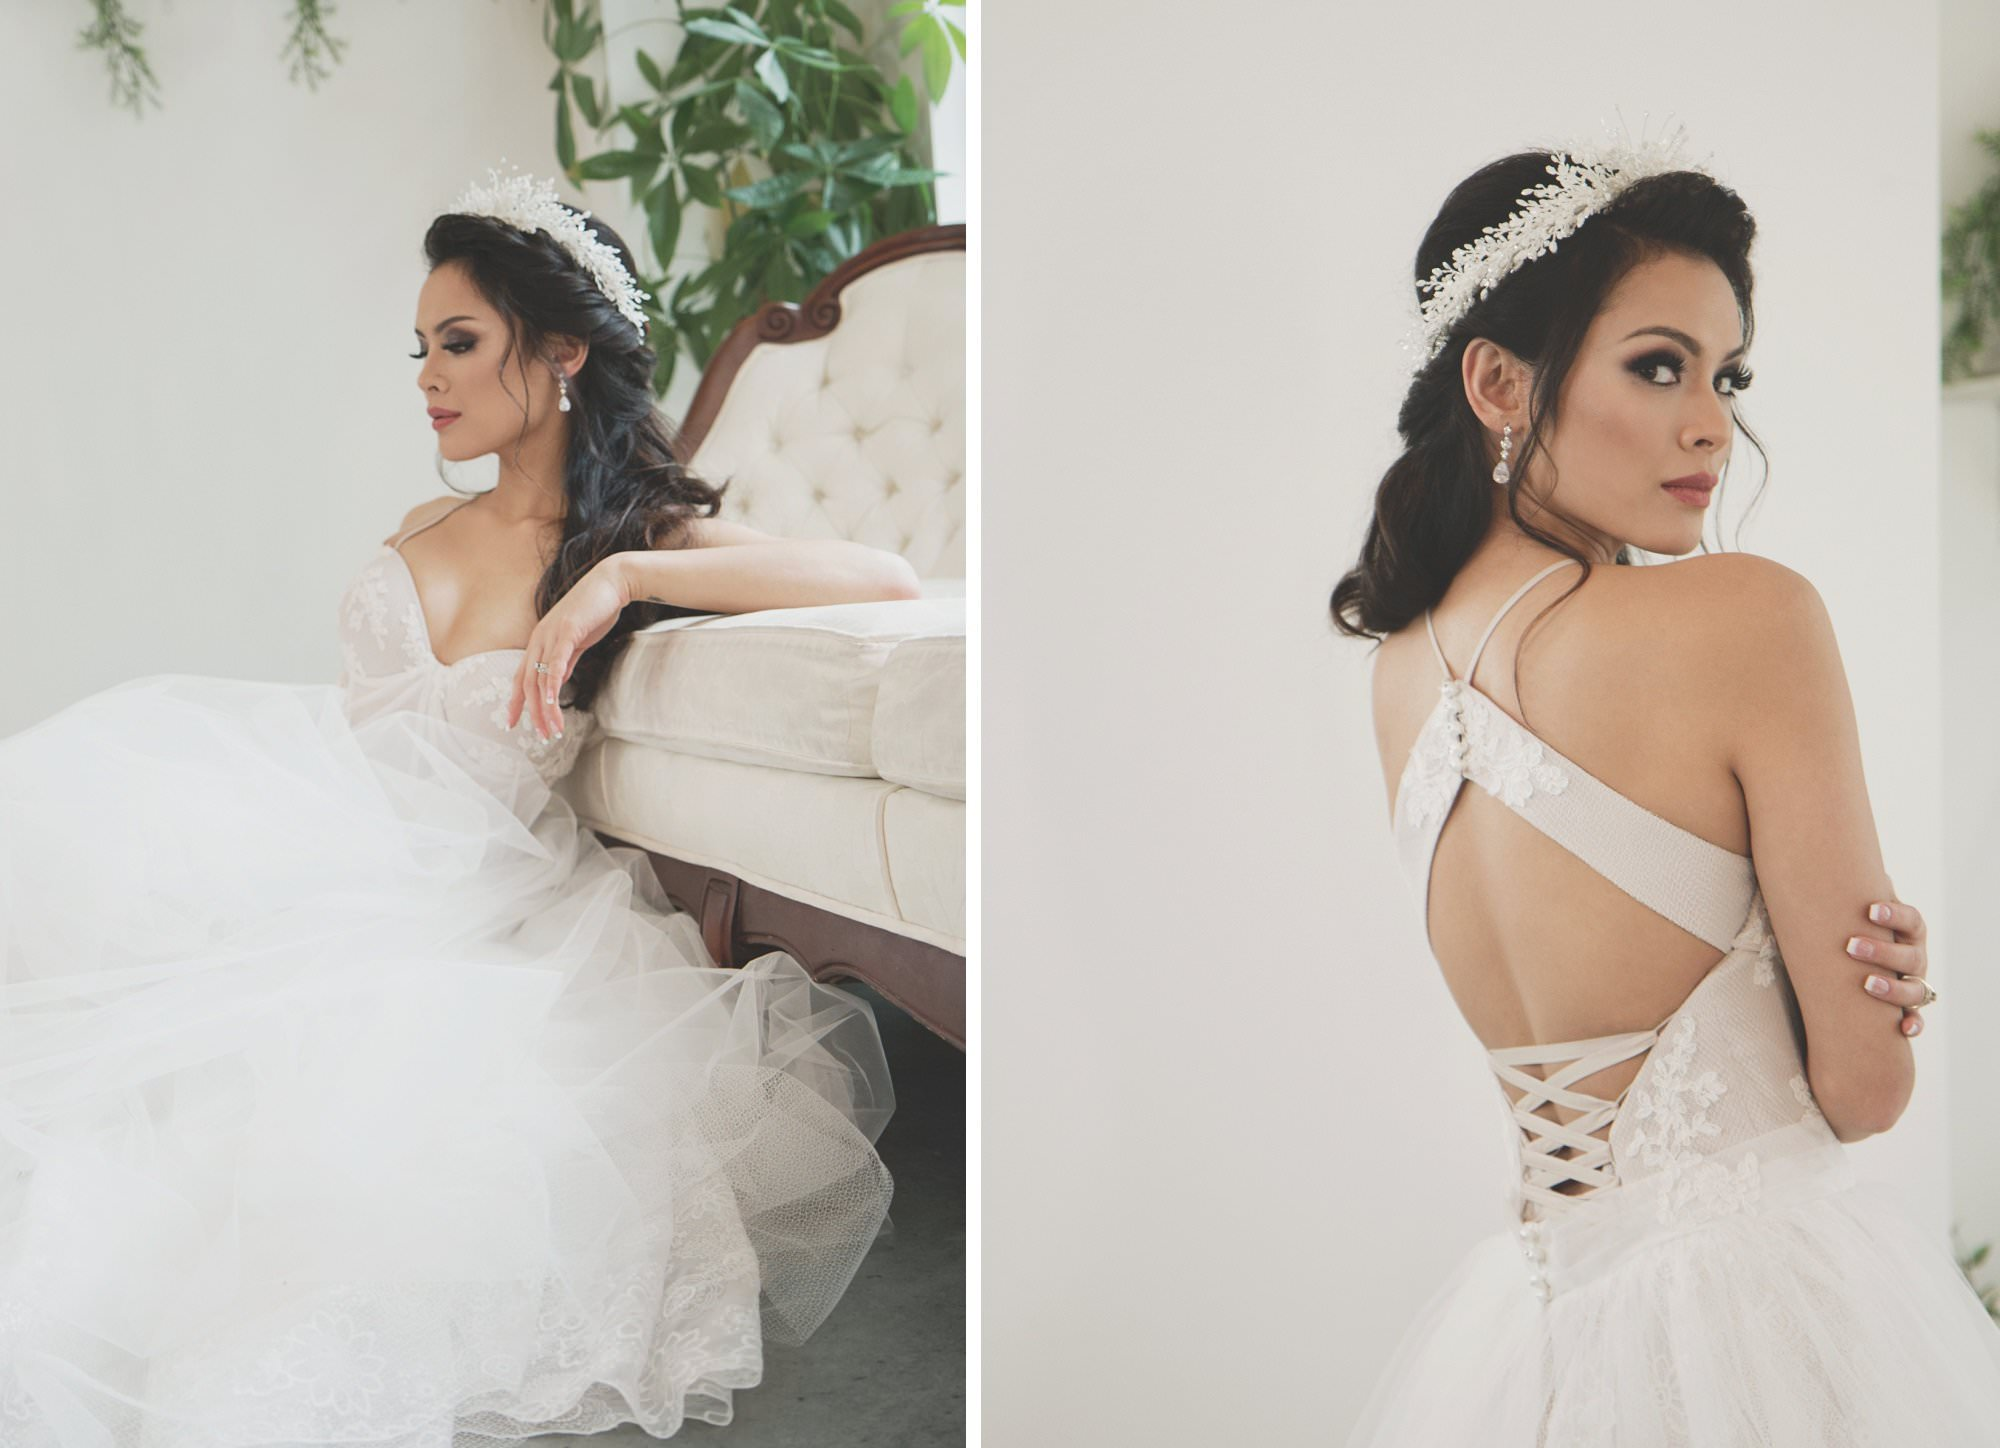 Ange Etoiles Wedding Dress Styled Photo Shoot